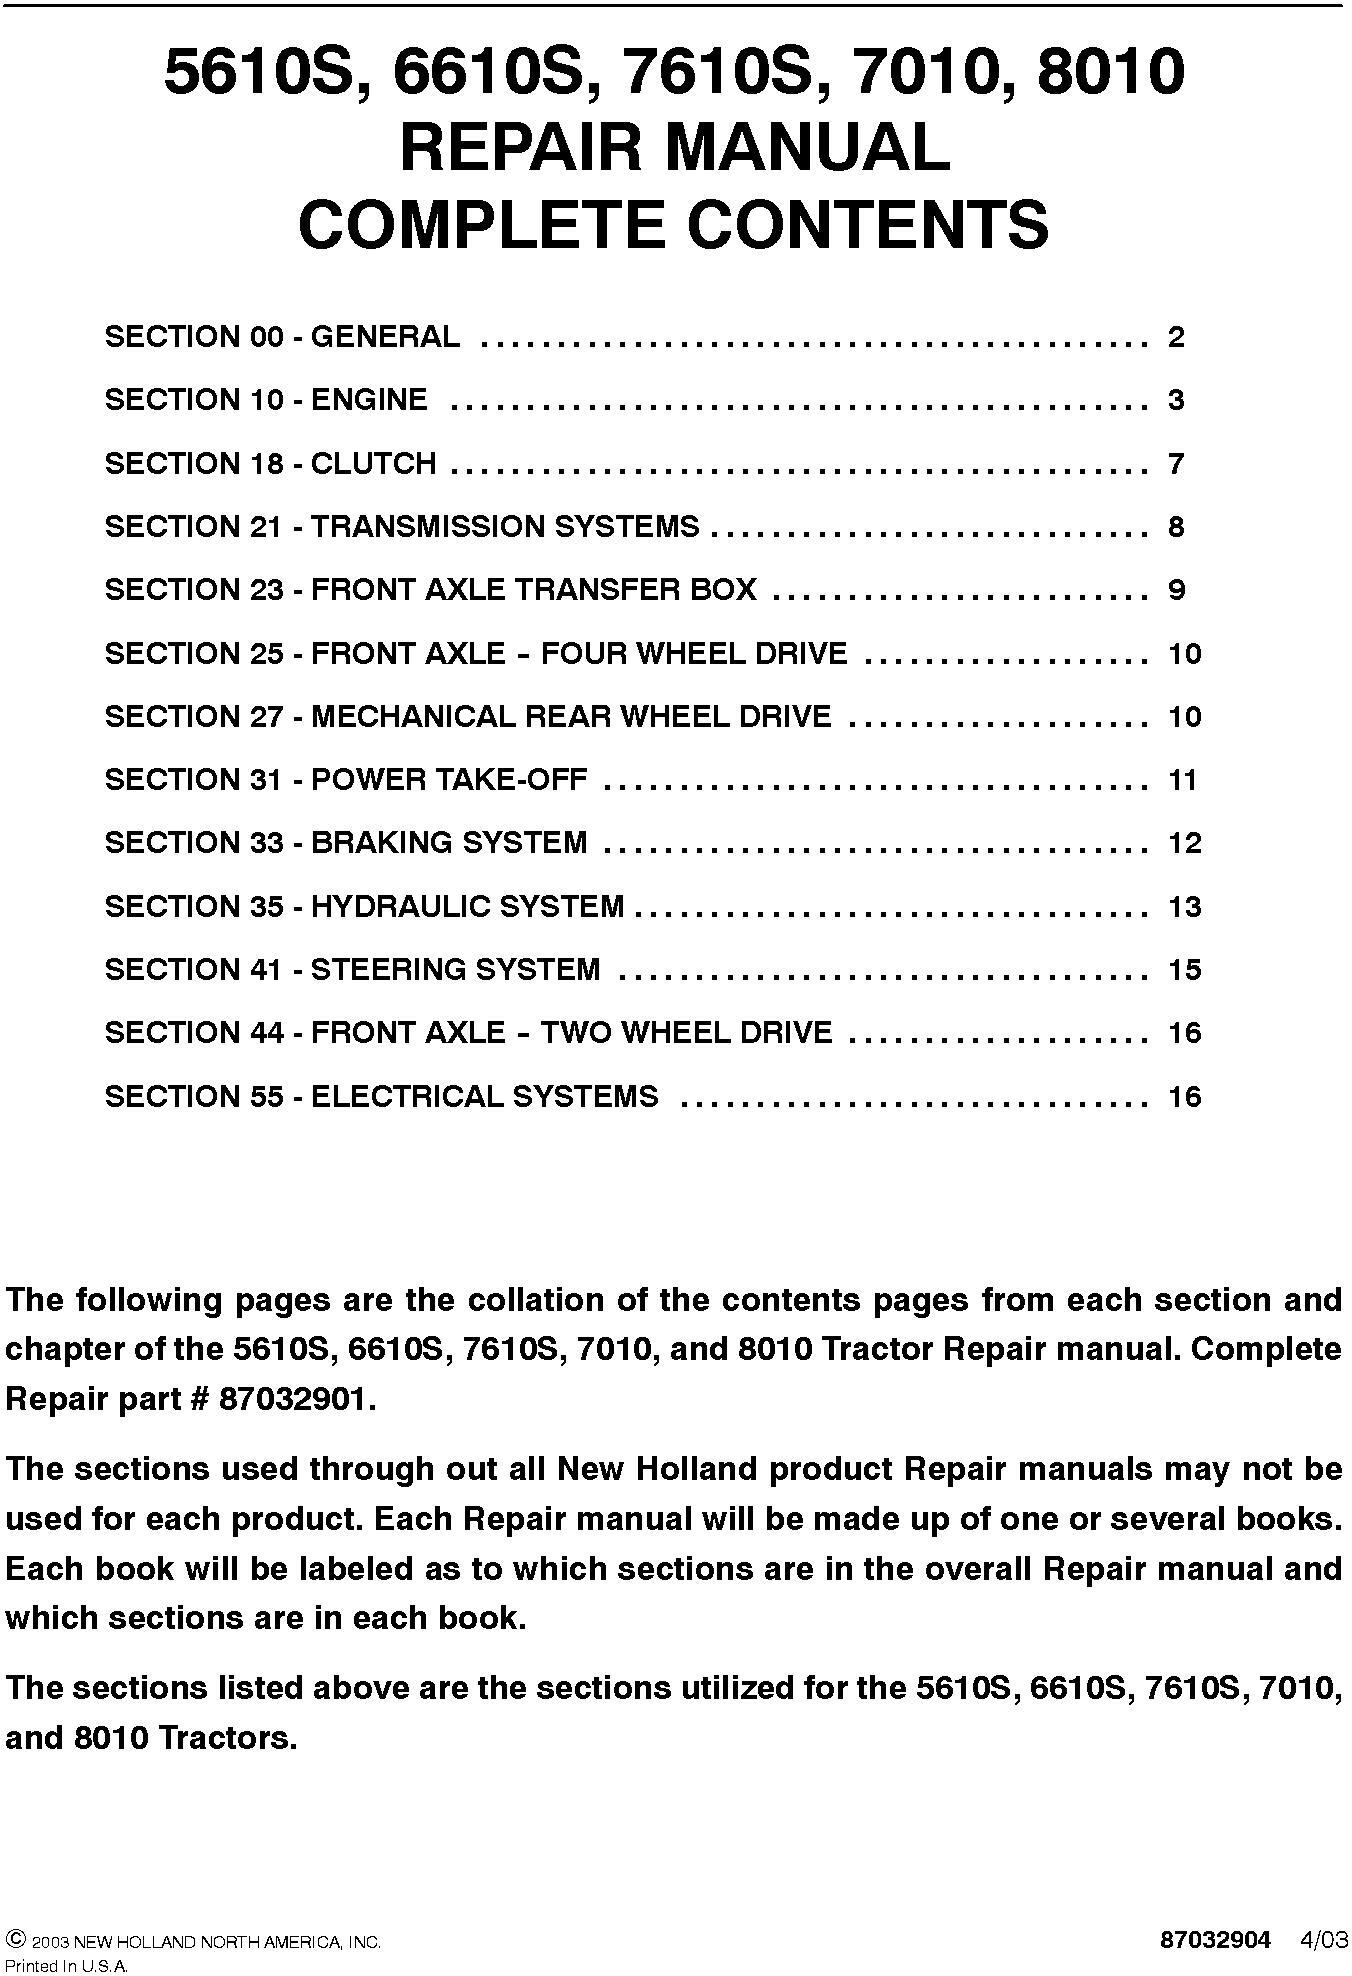 New Holland 5610S, 6610S, 7610S, 7810S, 7010, 8010 Complete Service Manual - 19598